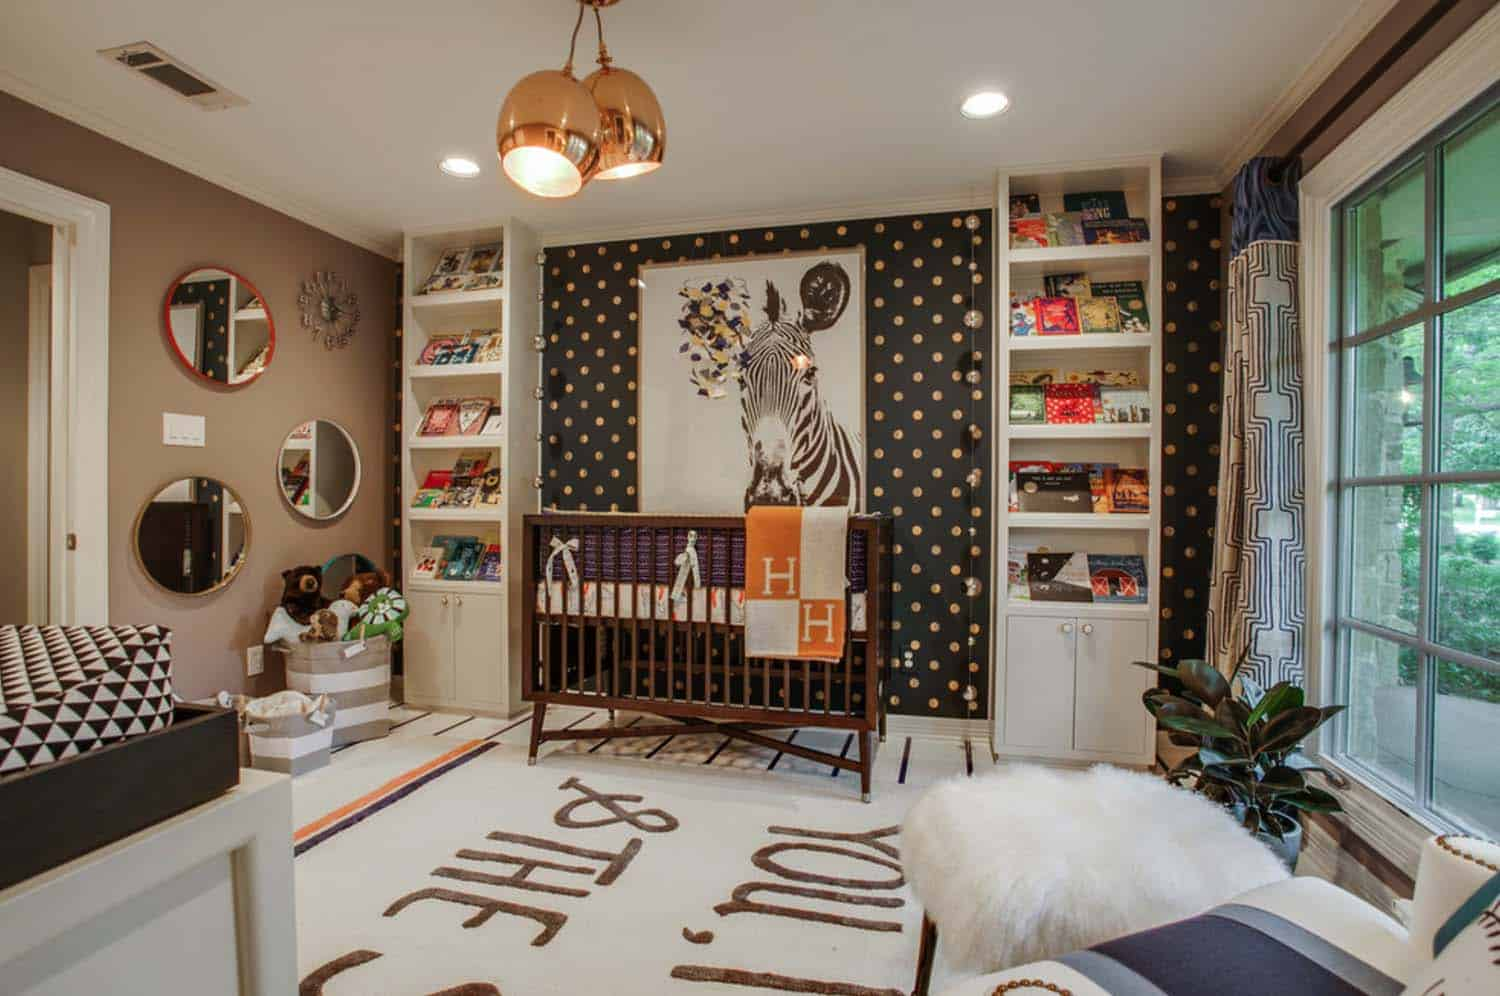 Stylish Nursery Decorating Ideas-33-1 Kindesign